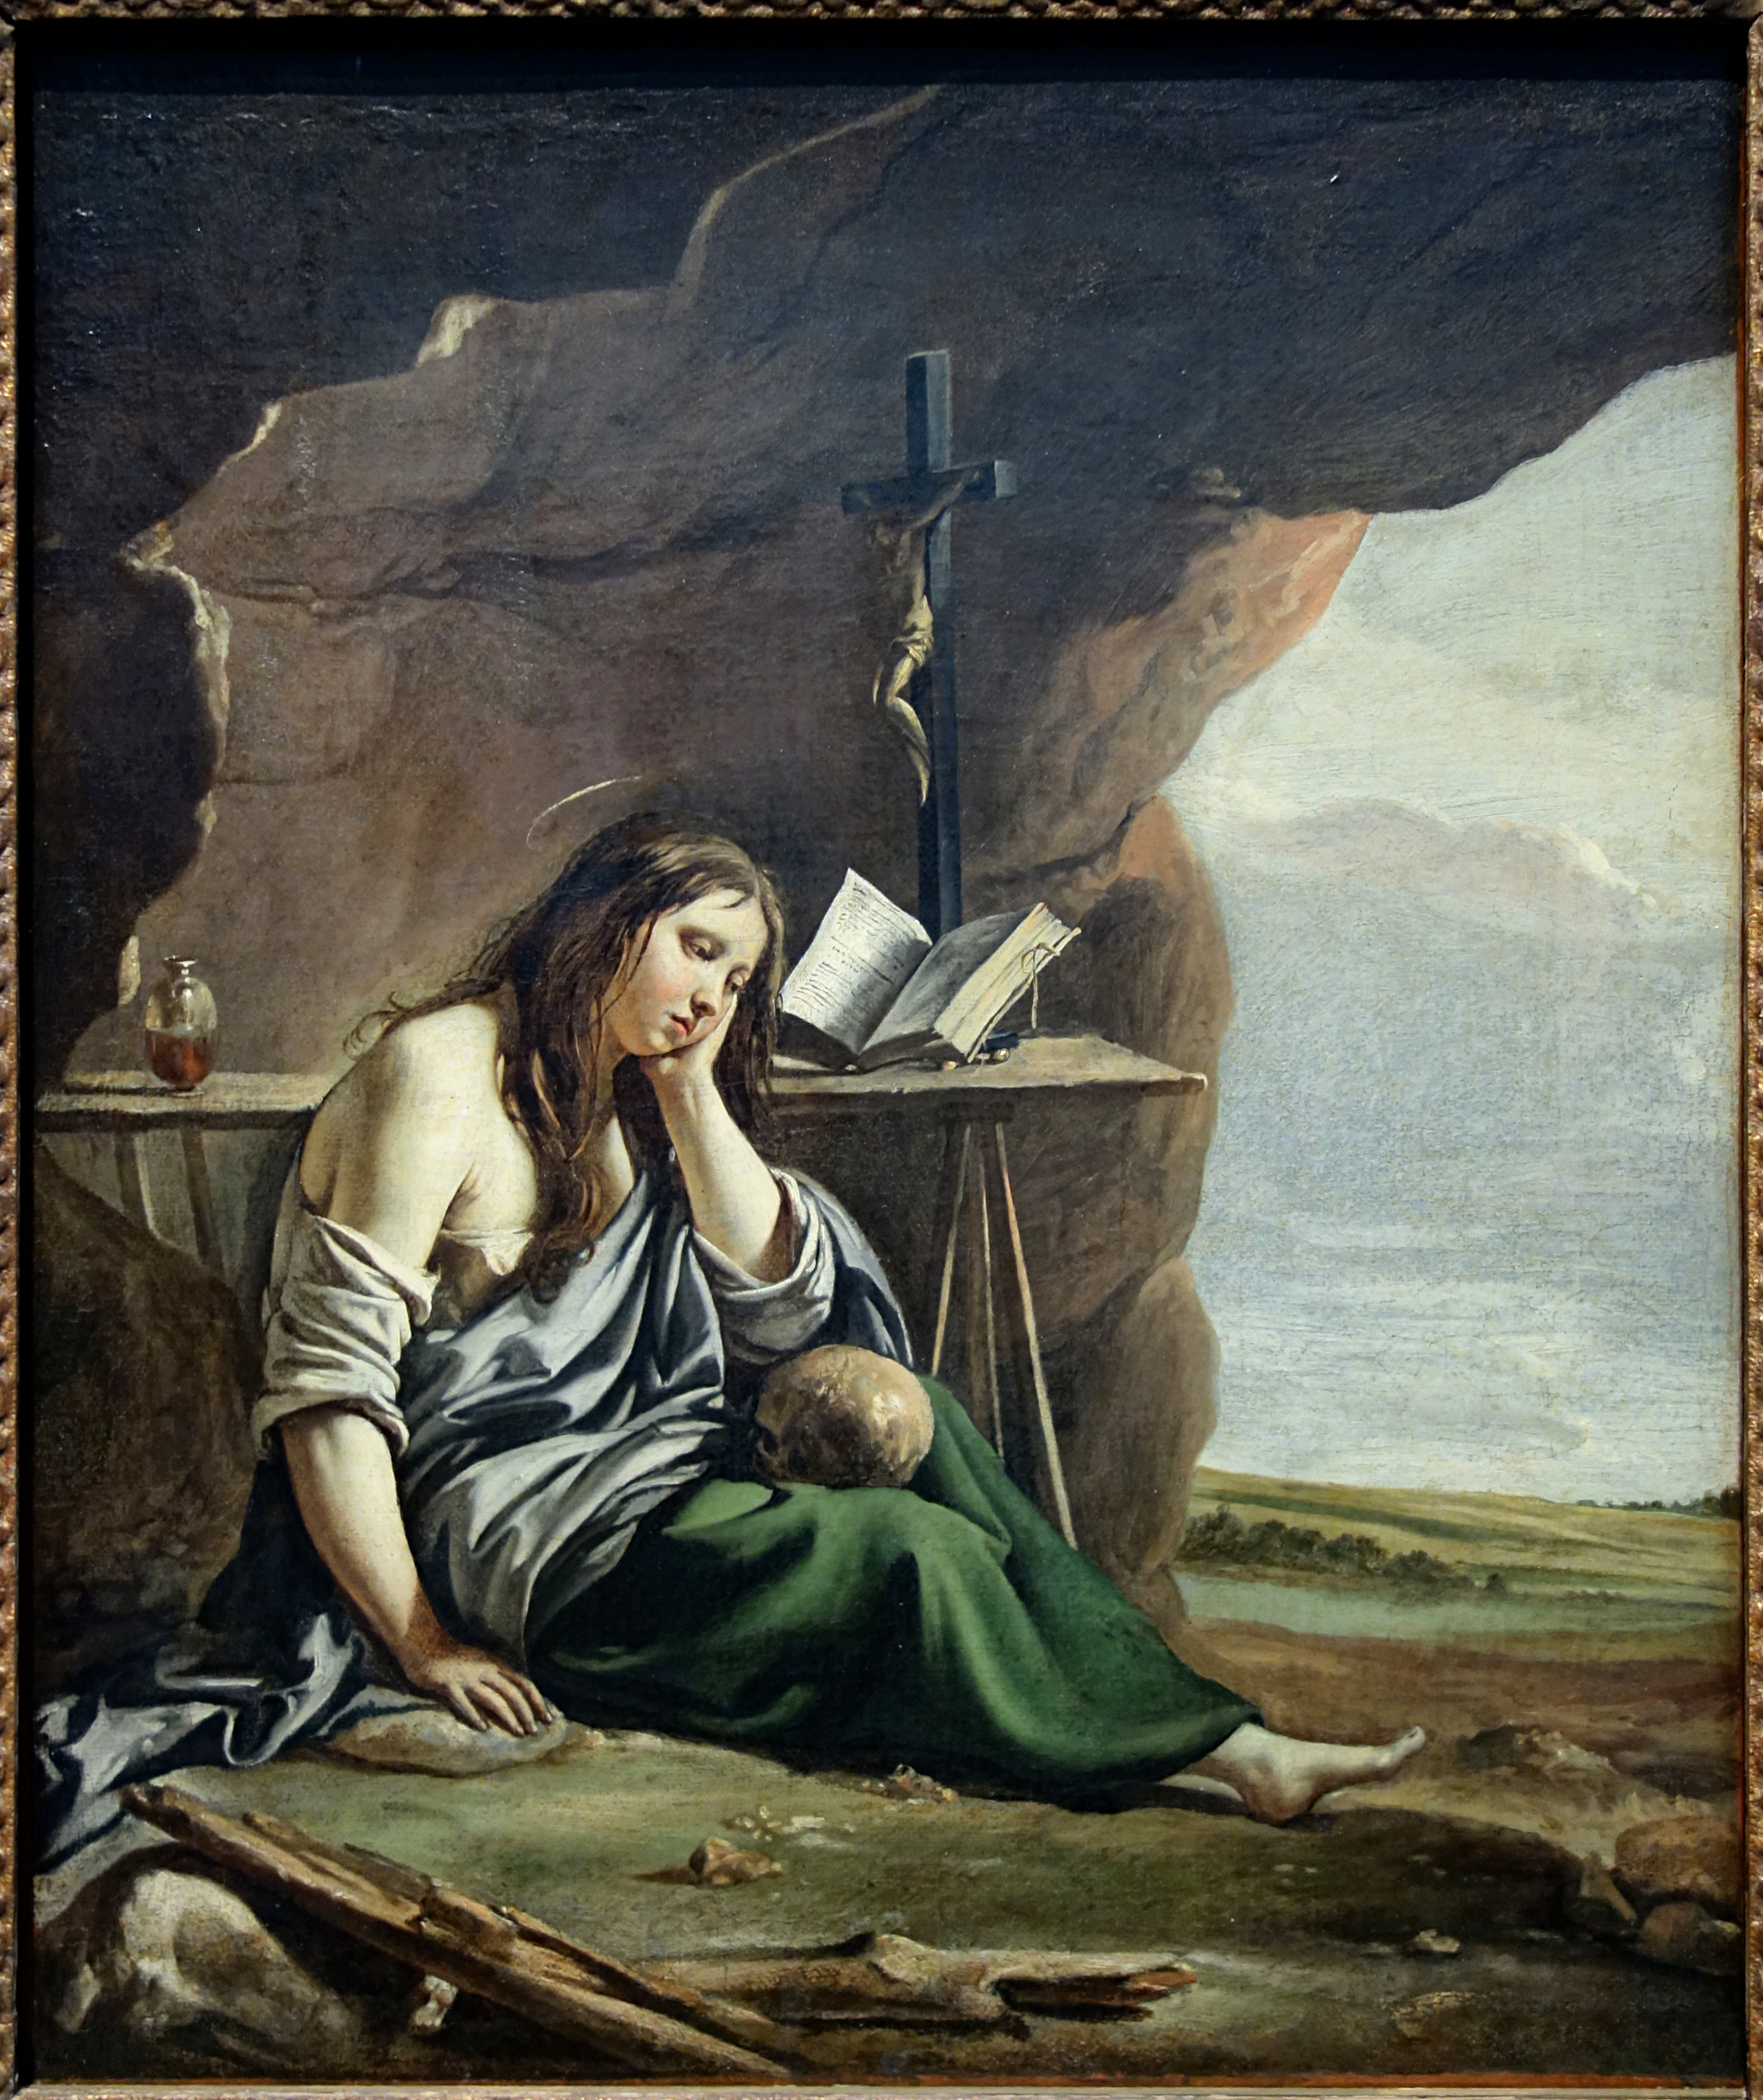 https://upload.wikimedia.org/wikipedia/commons/0/02/Louis_Le_nain_madeleine_penitente.jpg